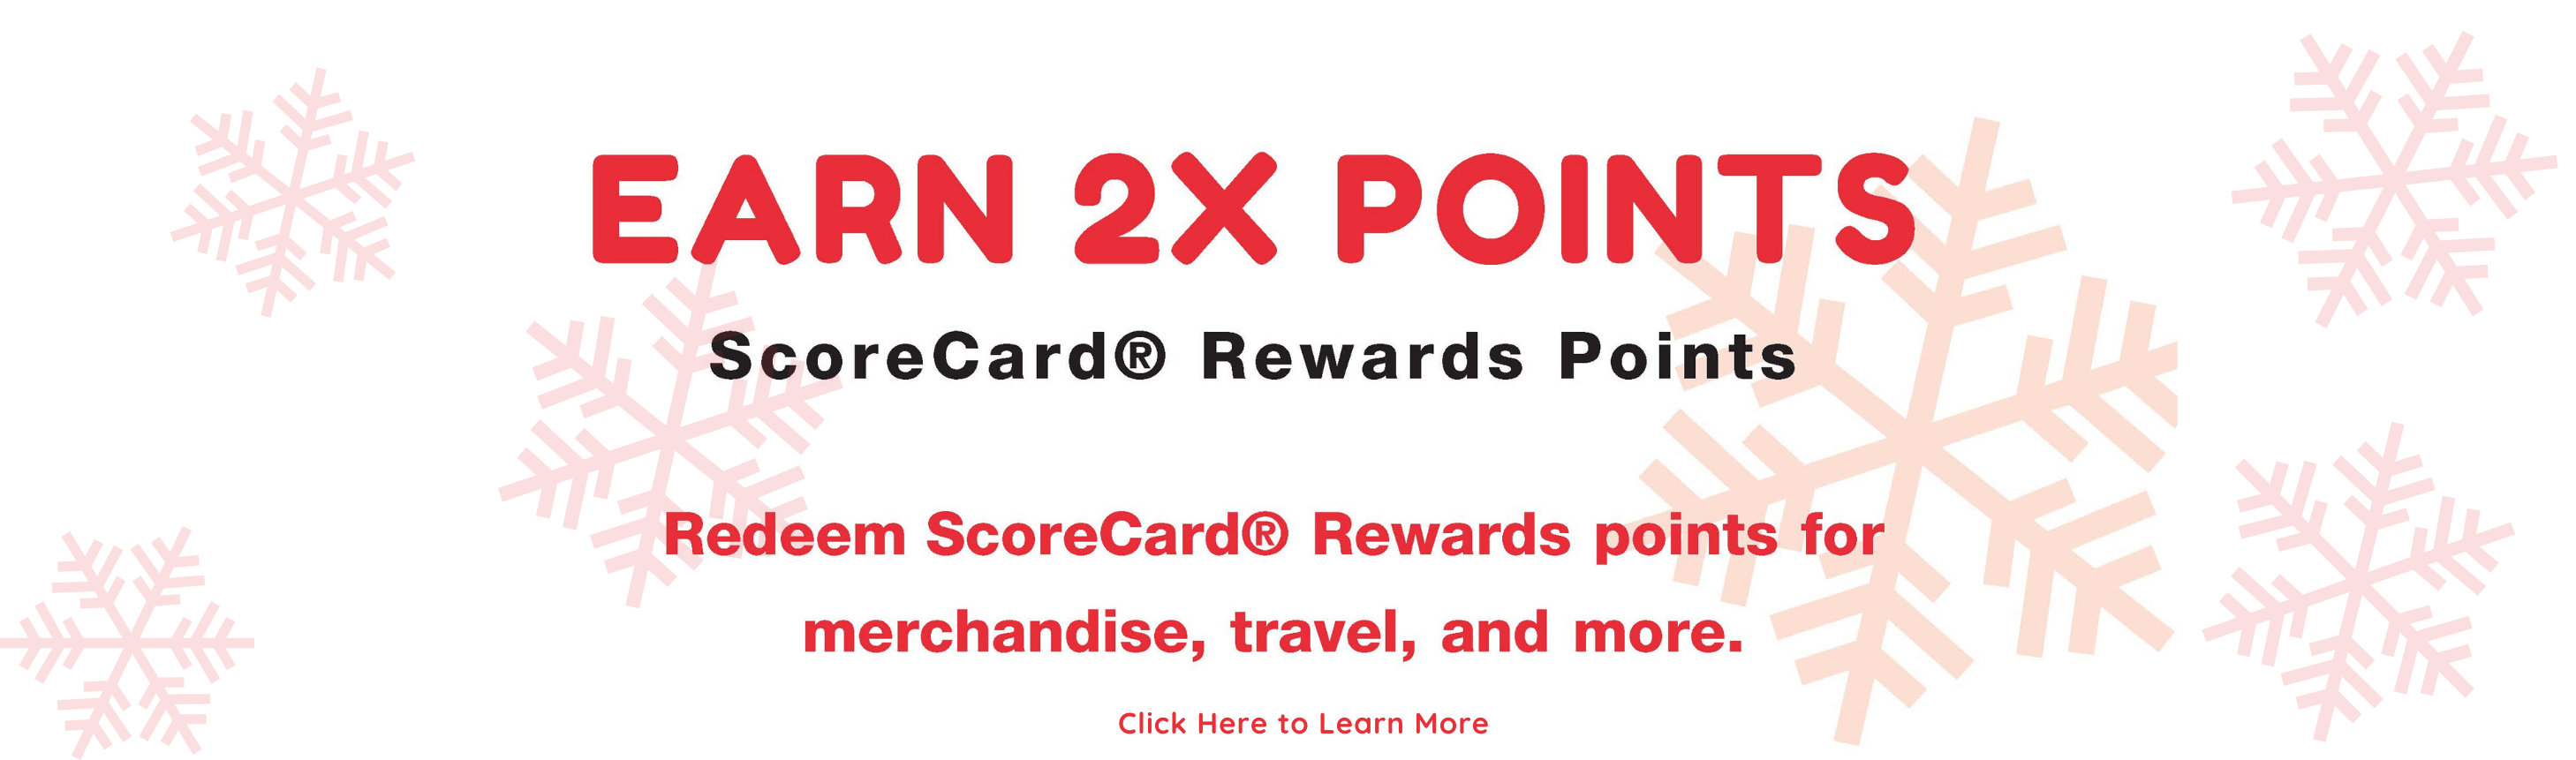 Earn 2x Points ScoreCard® Rewards Points. Redeem ScoreCard® Rewards points for merchandise, travel, and more. Visa® credit card holders will receive one base point and one bonus point for each dollar spent November 24-December 2nd, 2019. Promotion points will not post until 30 days after the promotion end date, to allow ample time for any residual transactions to be processed. Click here to Learn more.